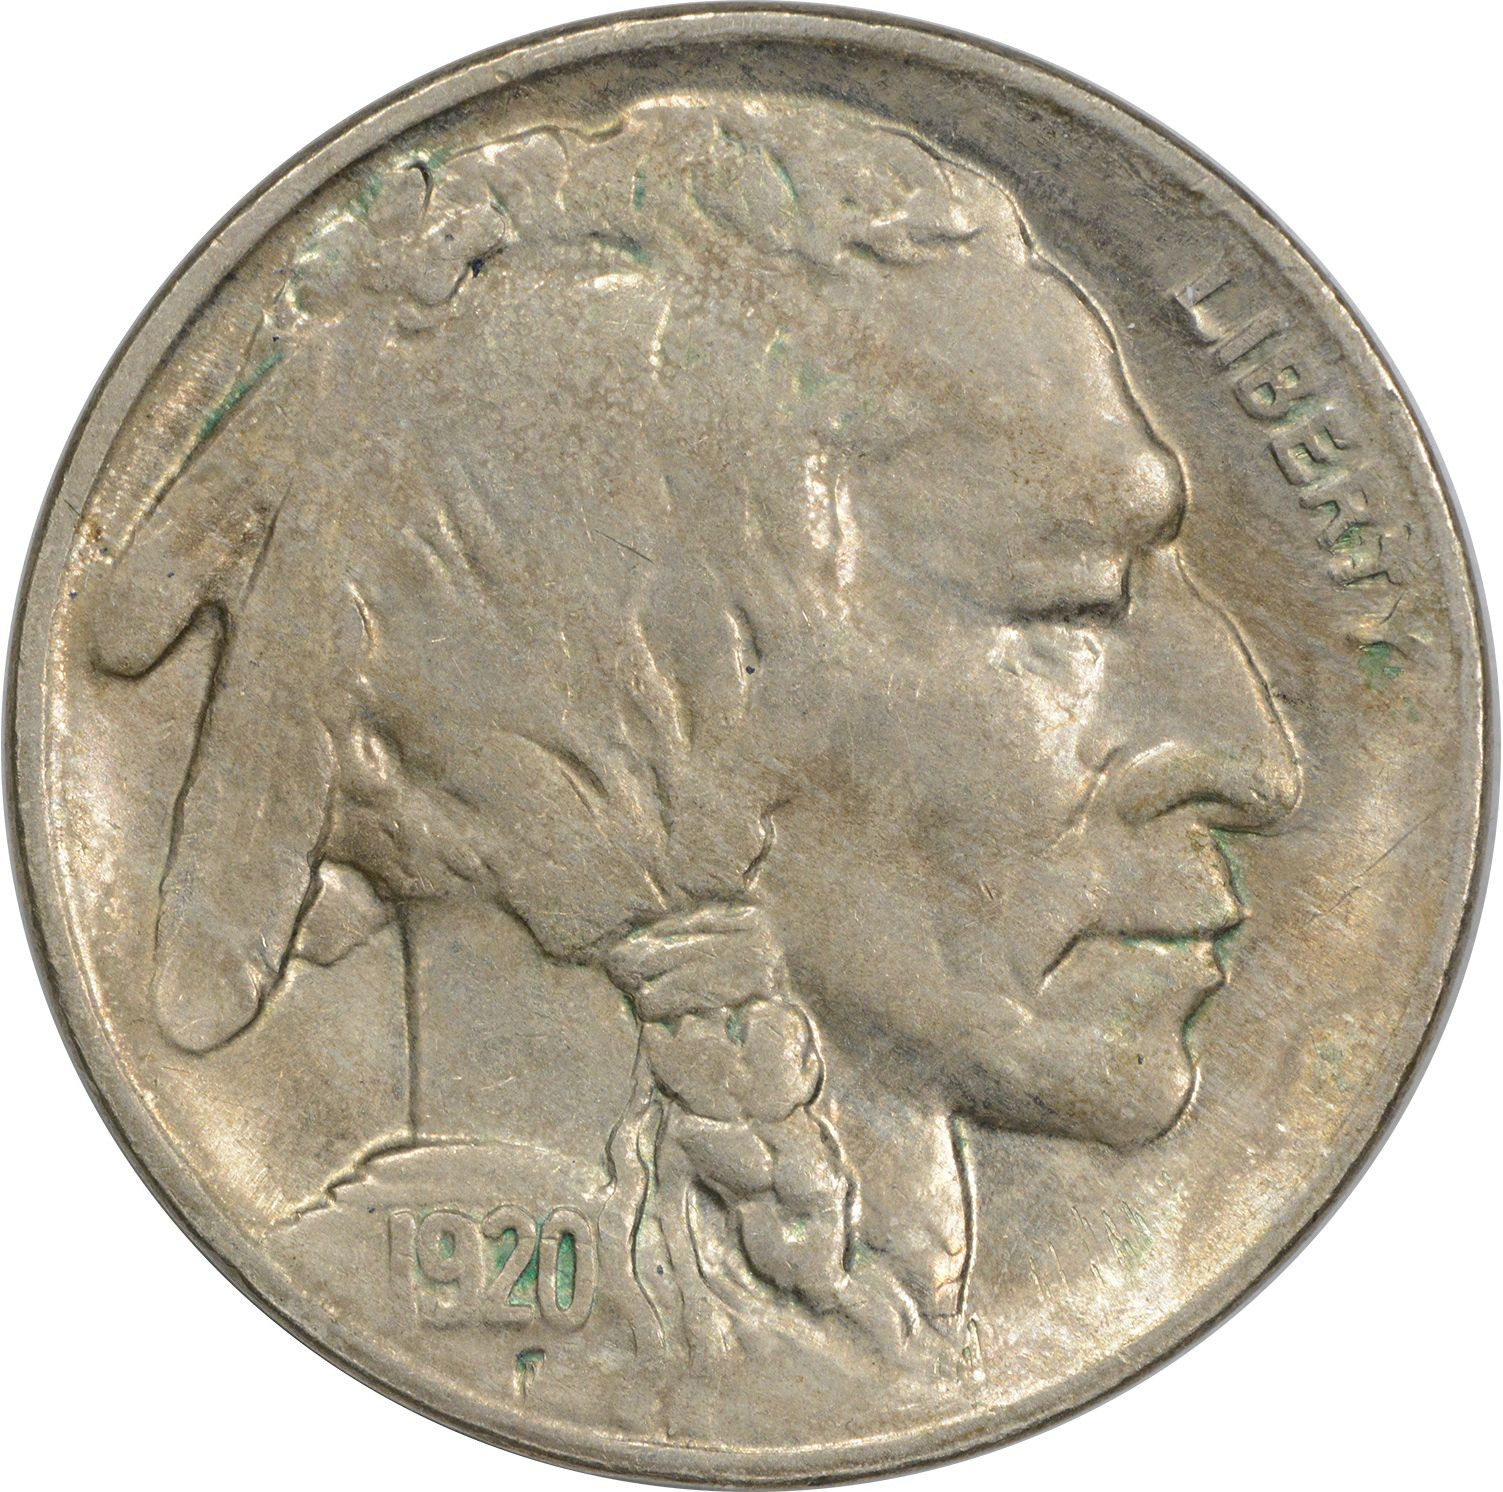 Buffalo Nickel Beautiful Nickels Buffalo Nickels Uncertified Buffalo Nickels Of Beautiful 46 Models Buffalo Nickel